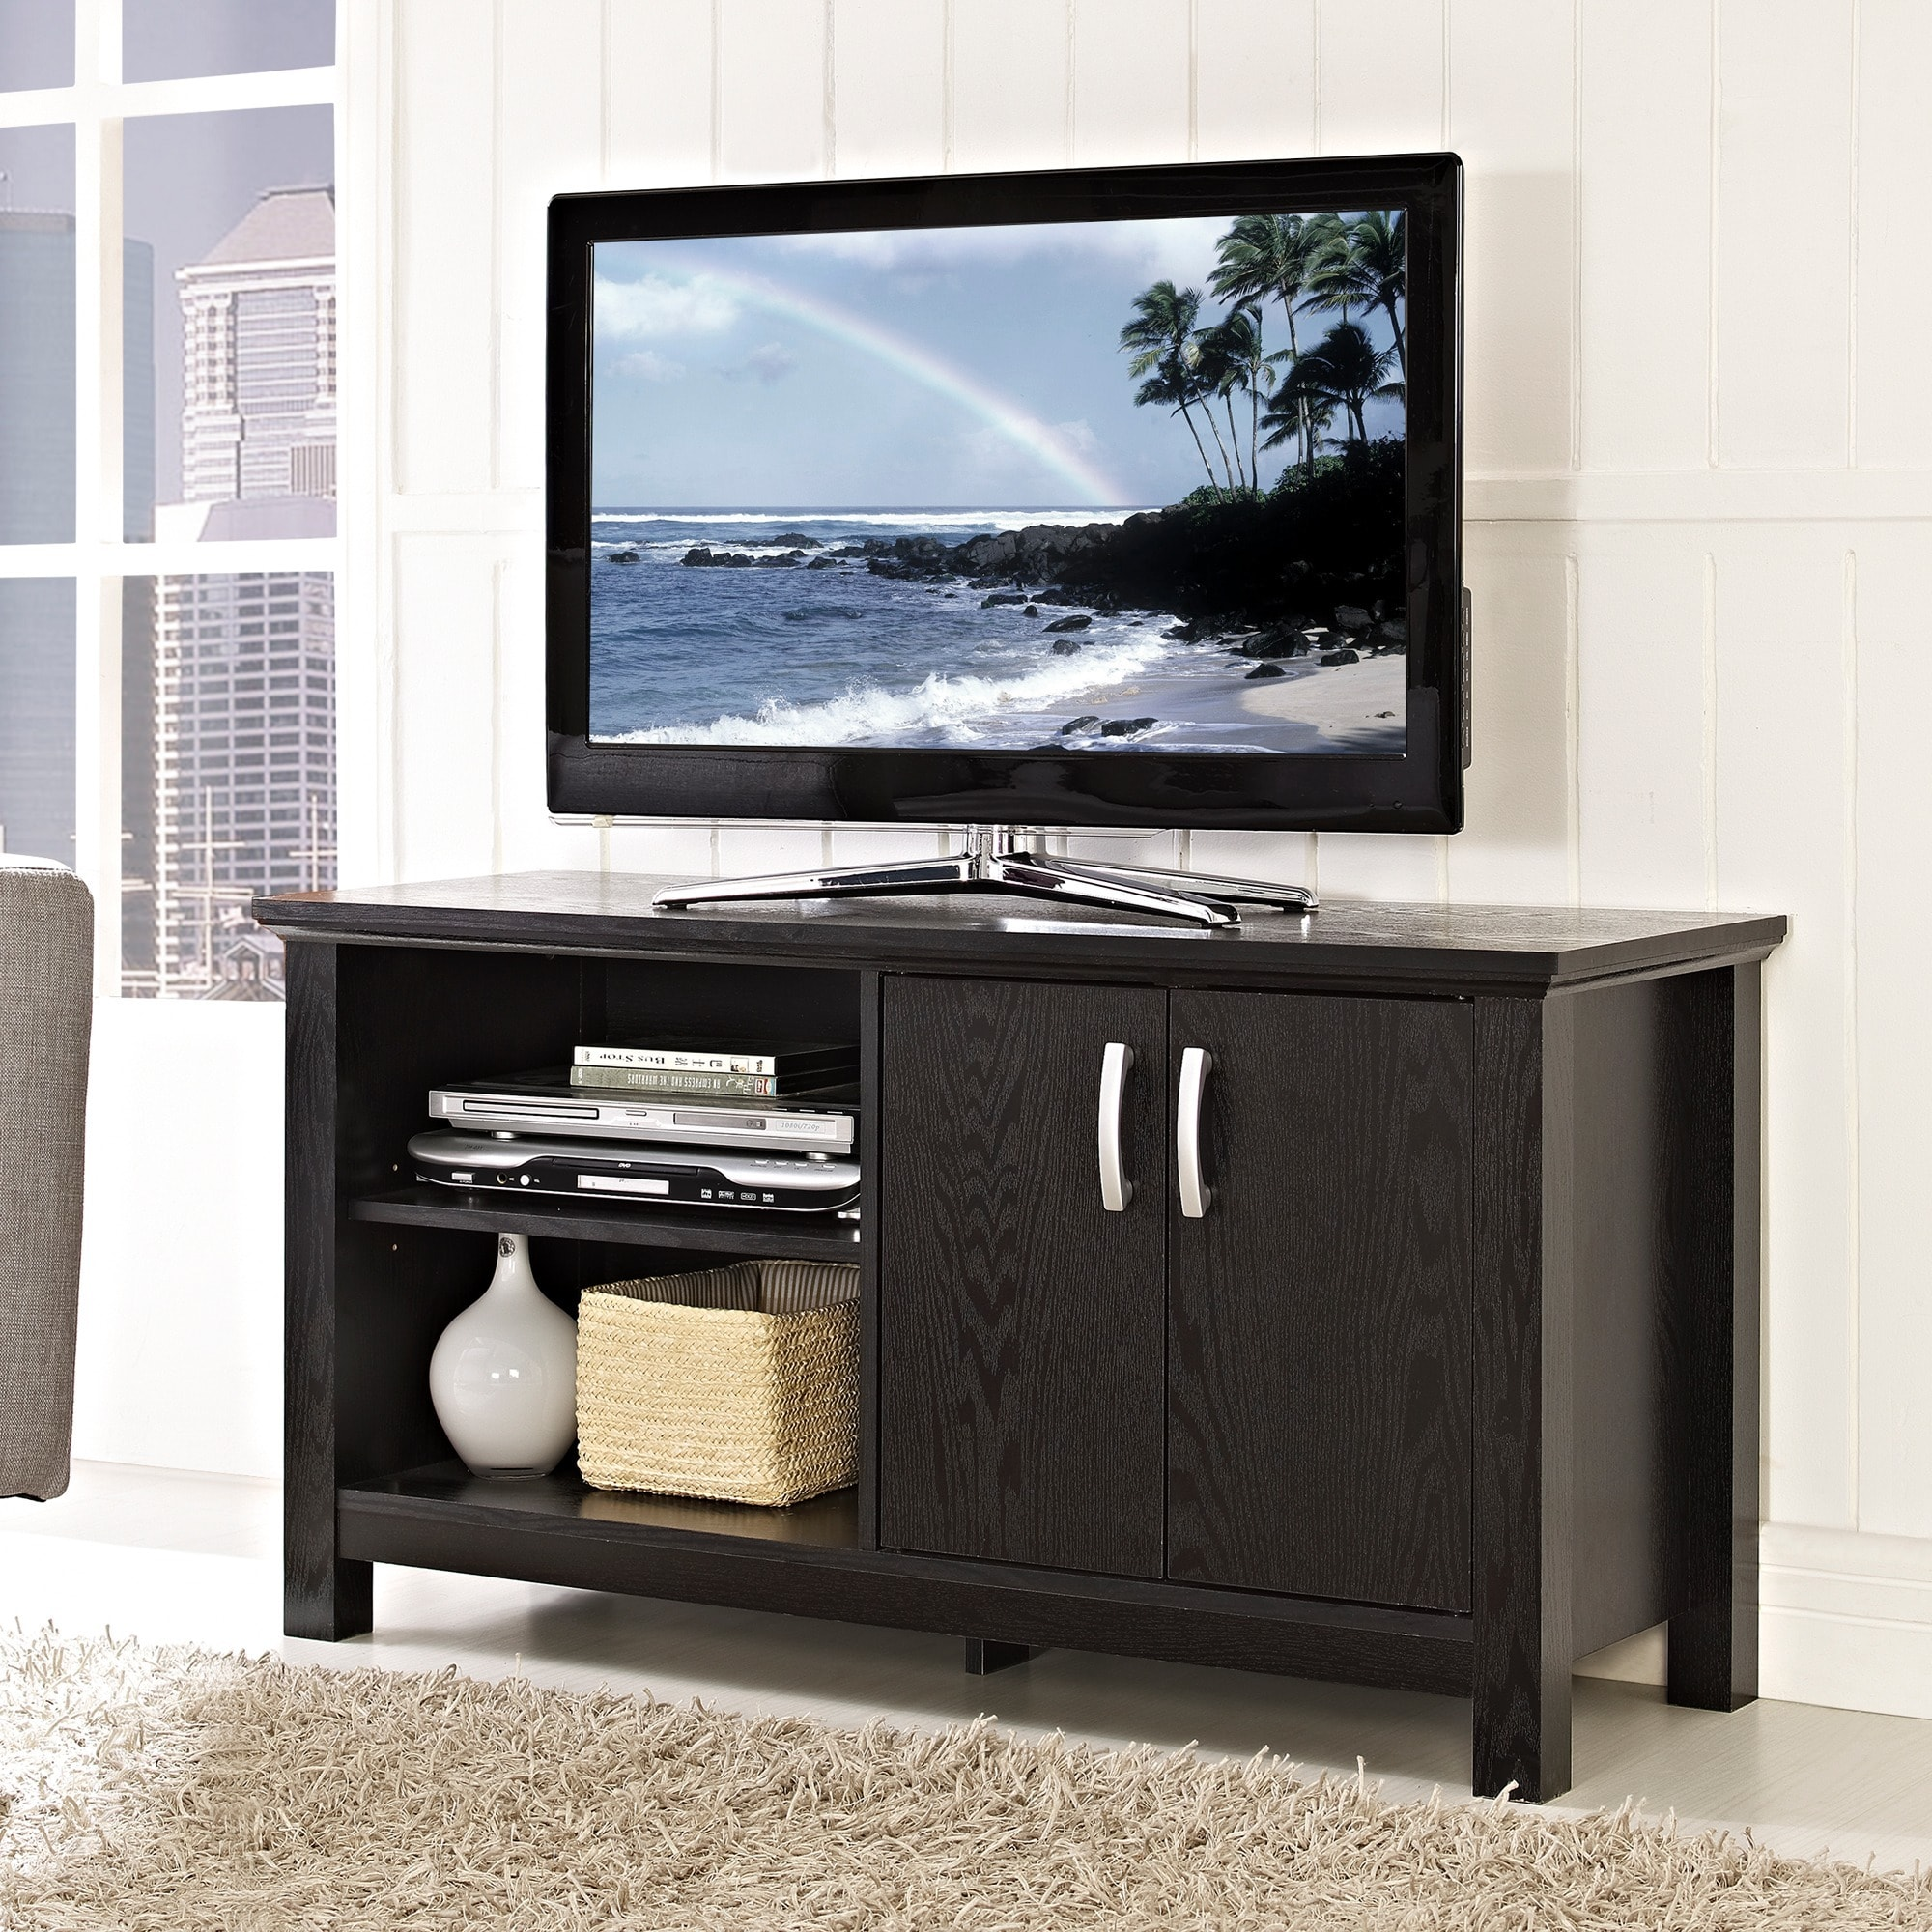 44 inch black wood tv stand overstock shopping great deals on entertainment centers. Black Bedroom Furniture Sets. Home Design Ideas